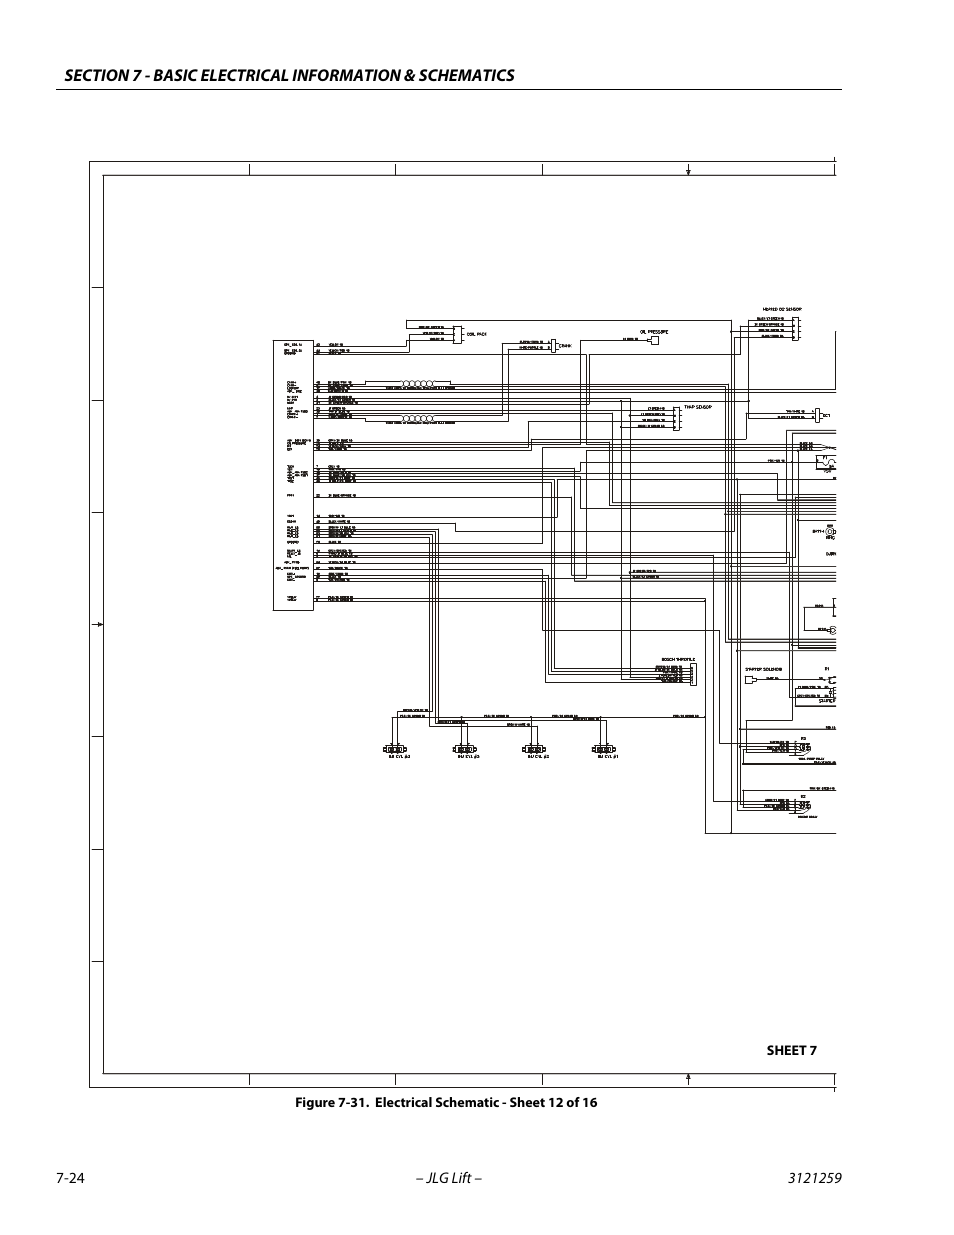 electrical schematic - sheet 12 of 16 -24, gm engine harness | jlg 340aj  service manual user manual | page 338 / 348